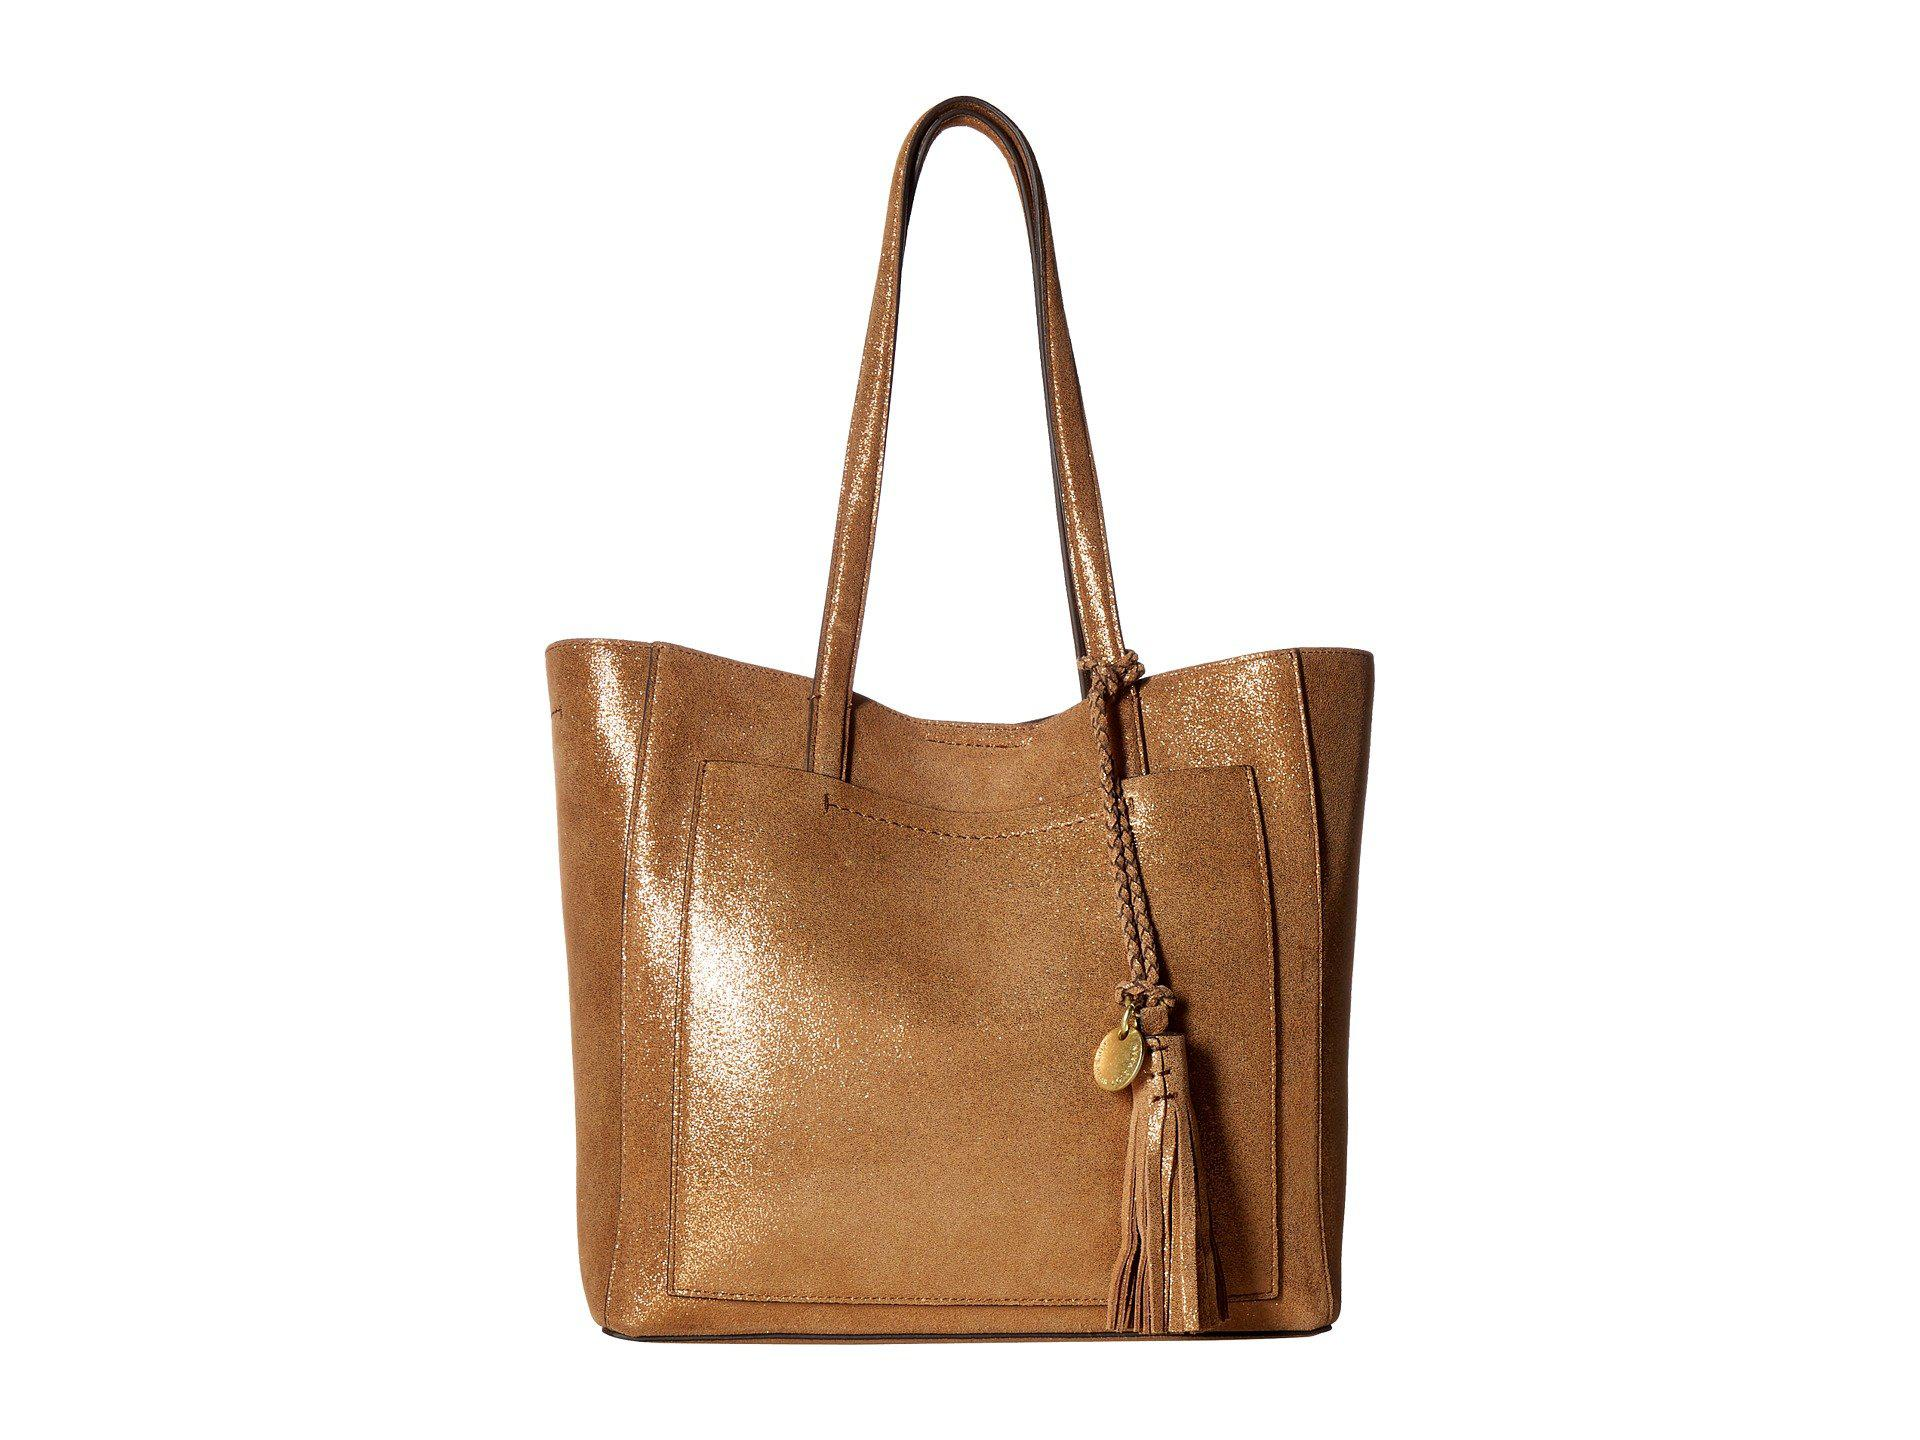 581c5cacbb2 Cole Haan Natalie Small Tote in Brown - Lyst